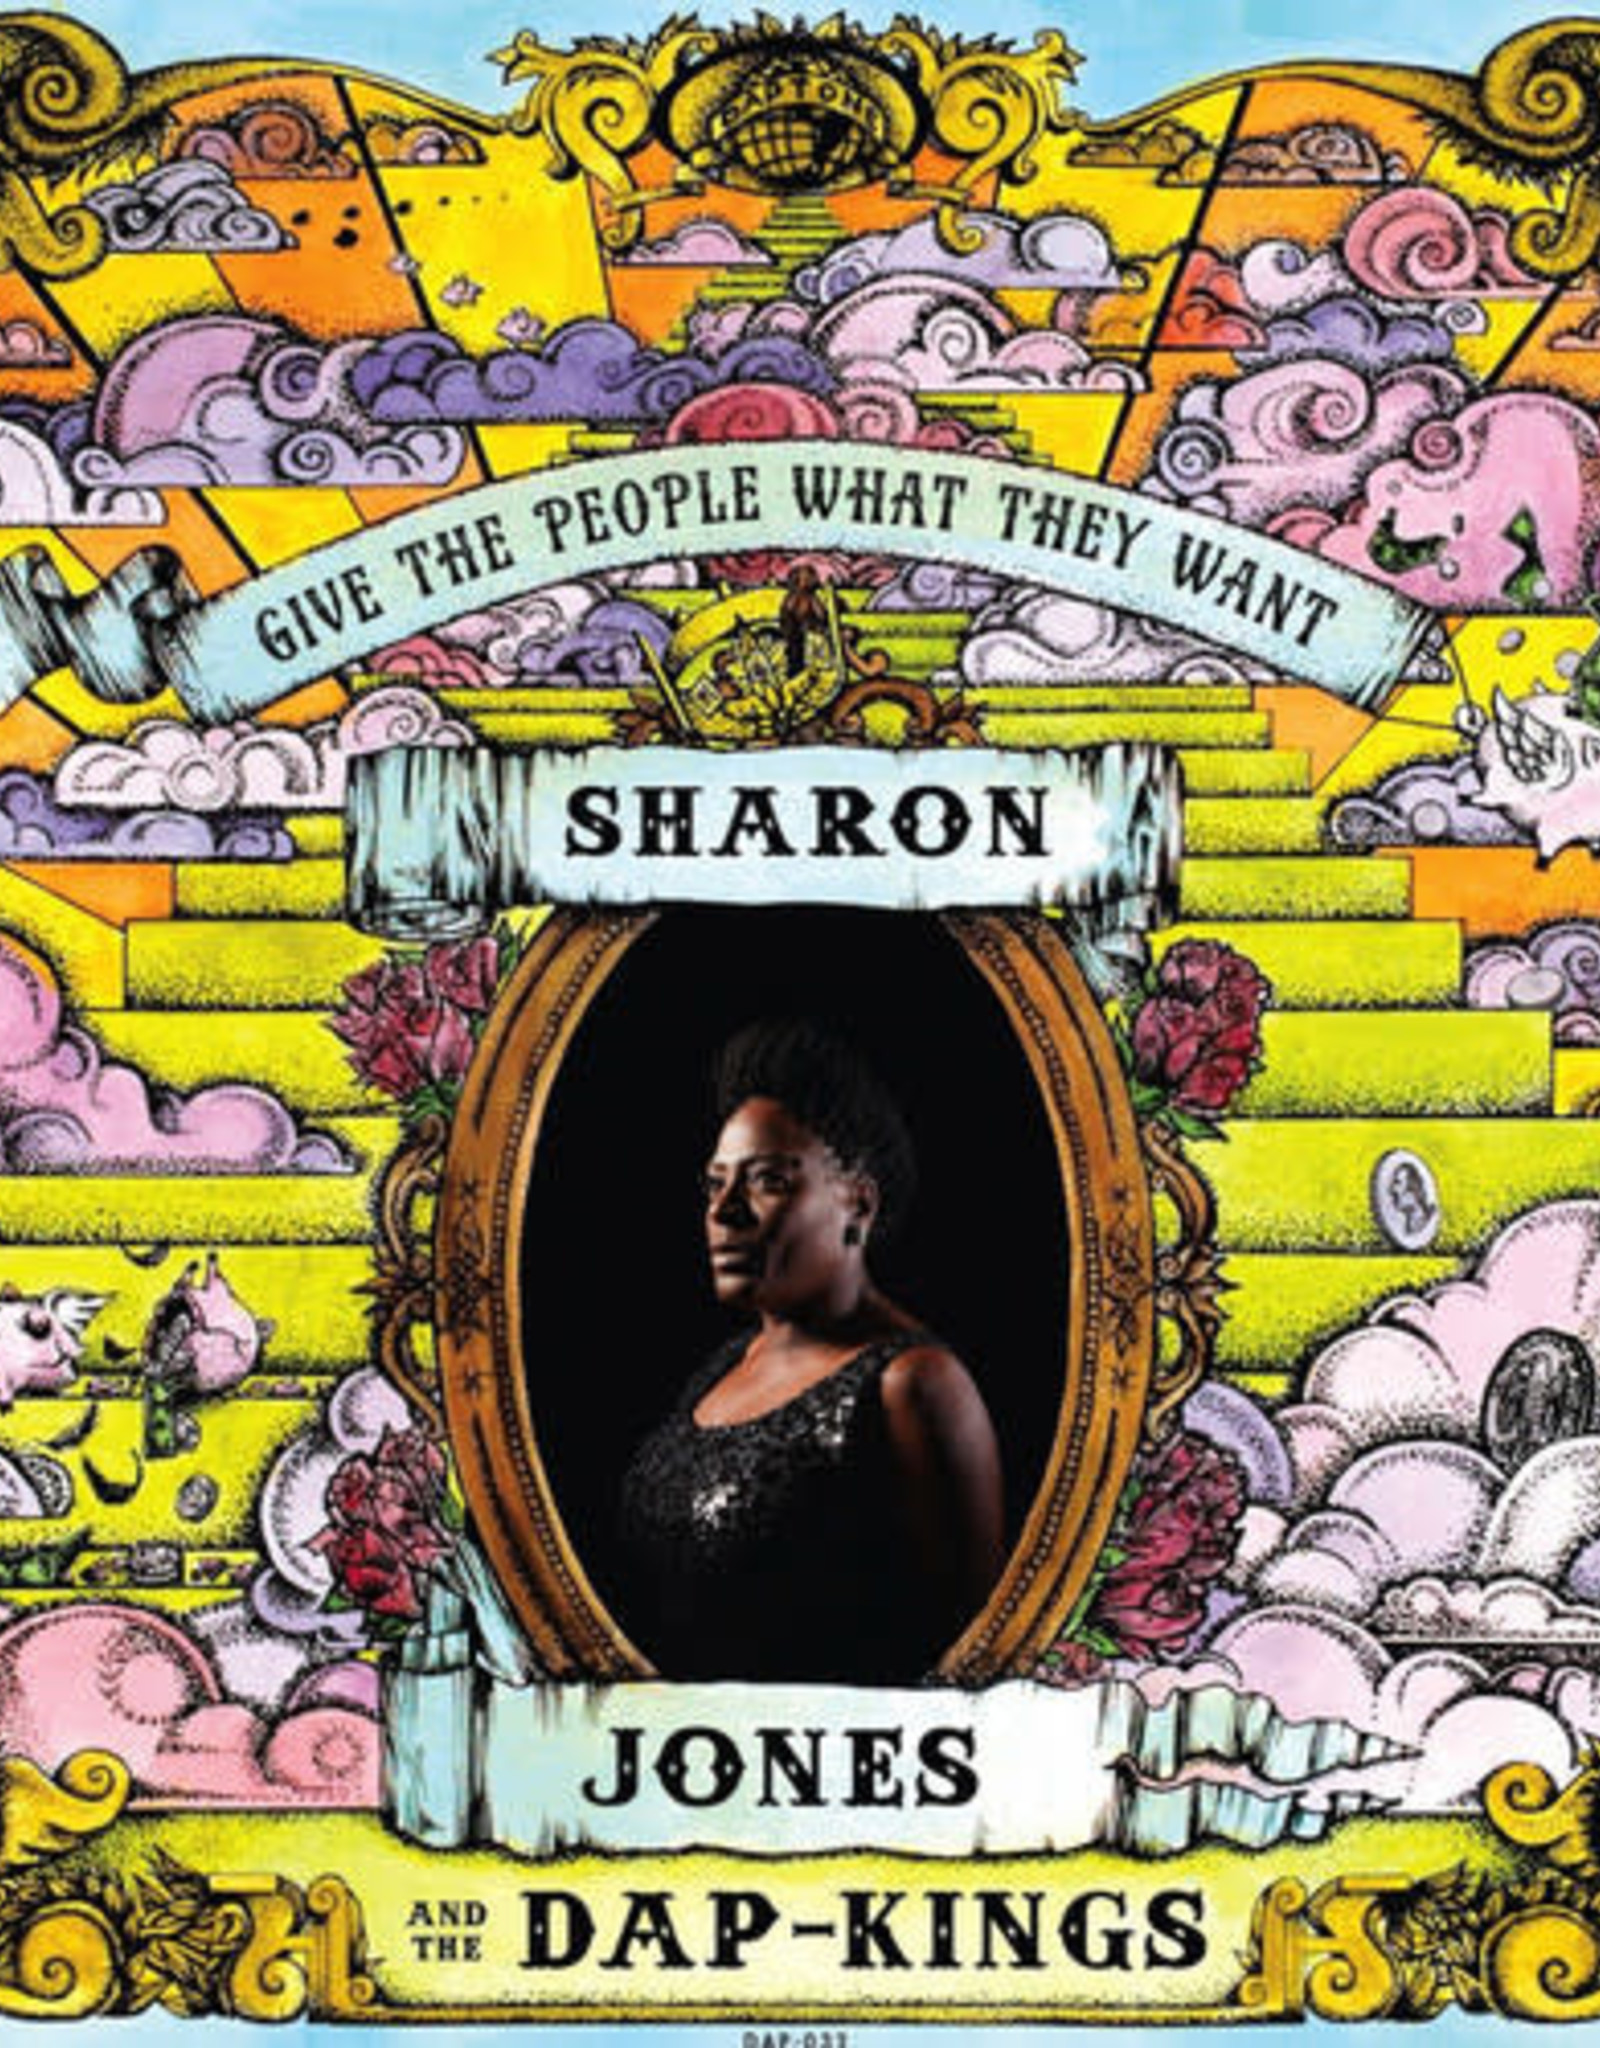 JONES,SHARON & DAP-KINGS / GIVE THE PEOPLE WHAT THEY WANT